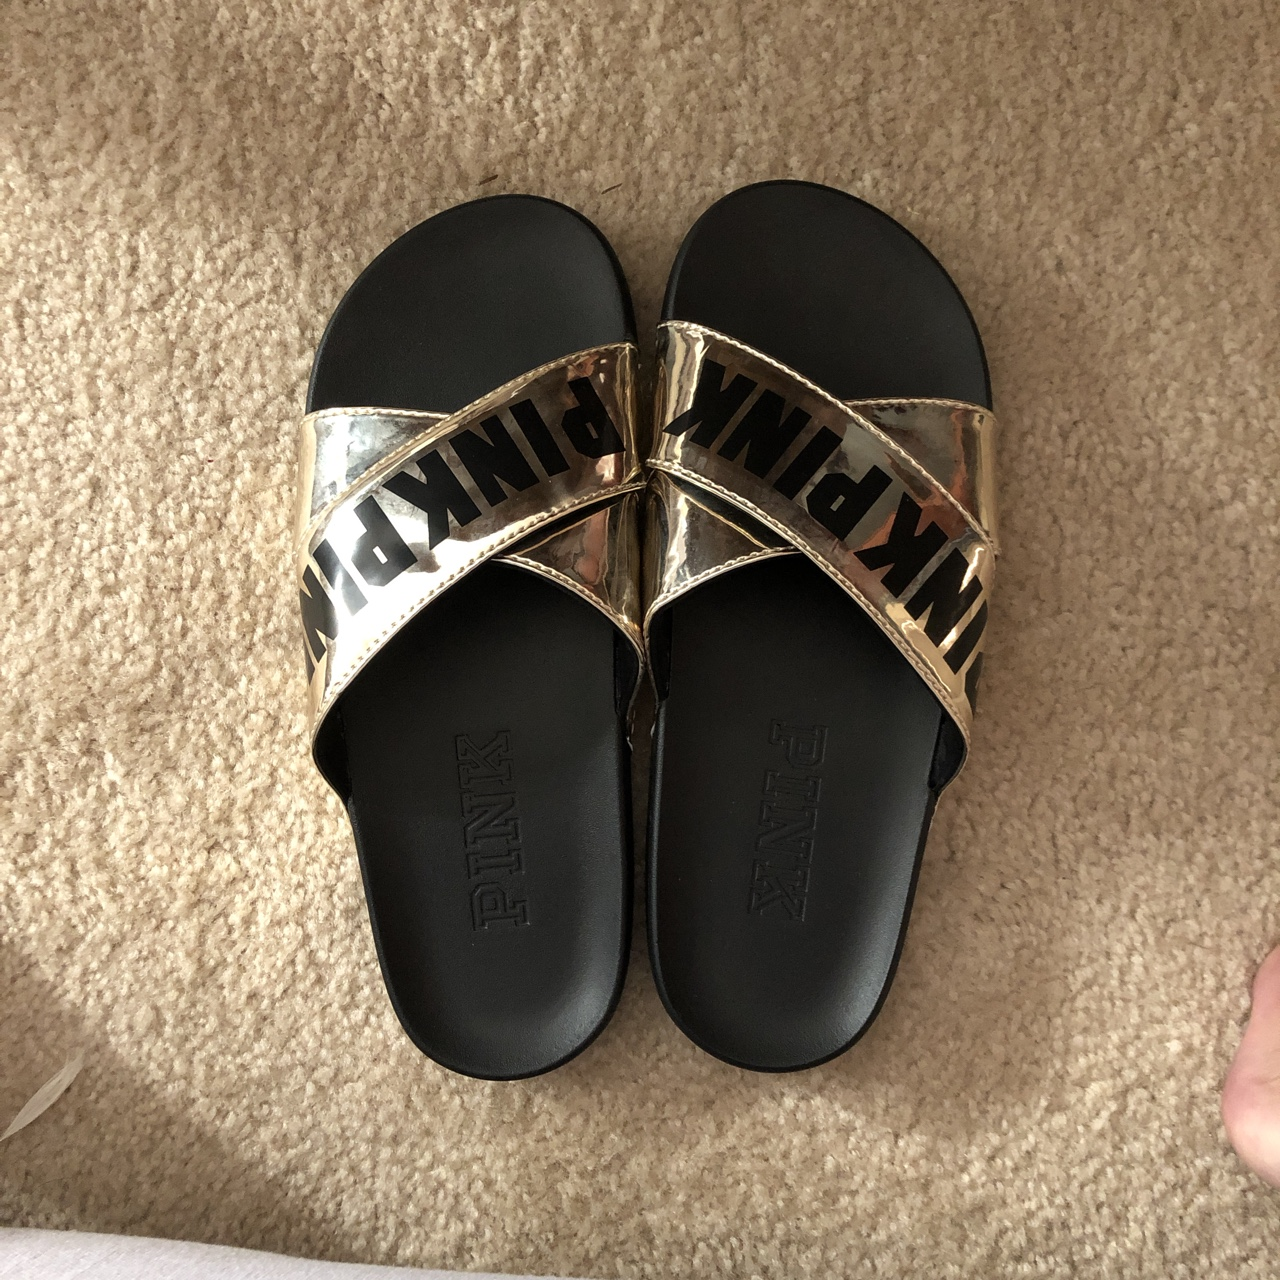 763845a472a43 victoria's secret pink slides. black and gold brand... - Depop